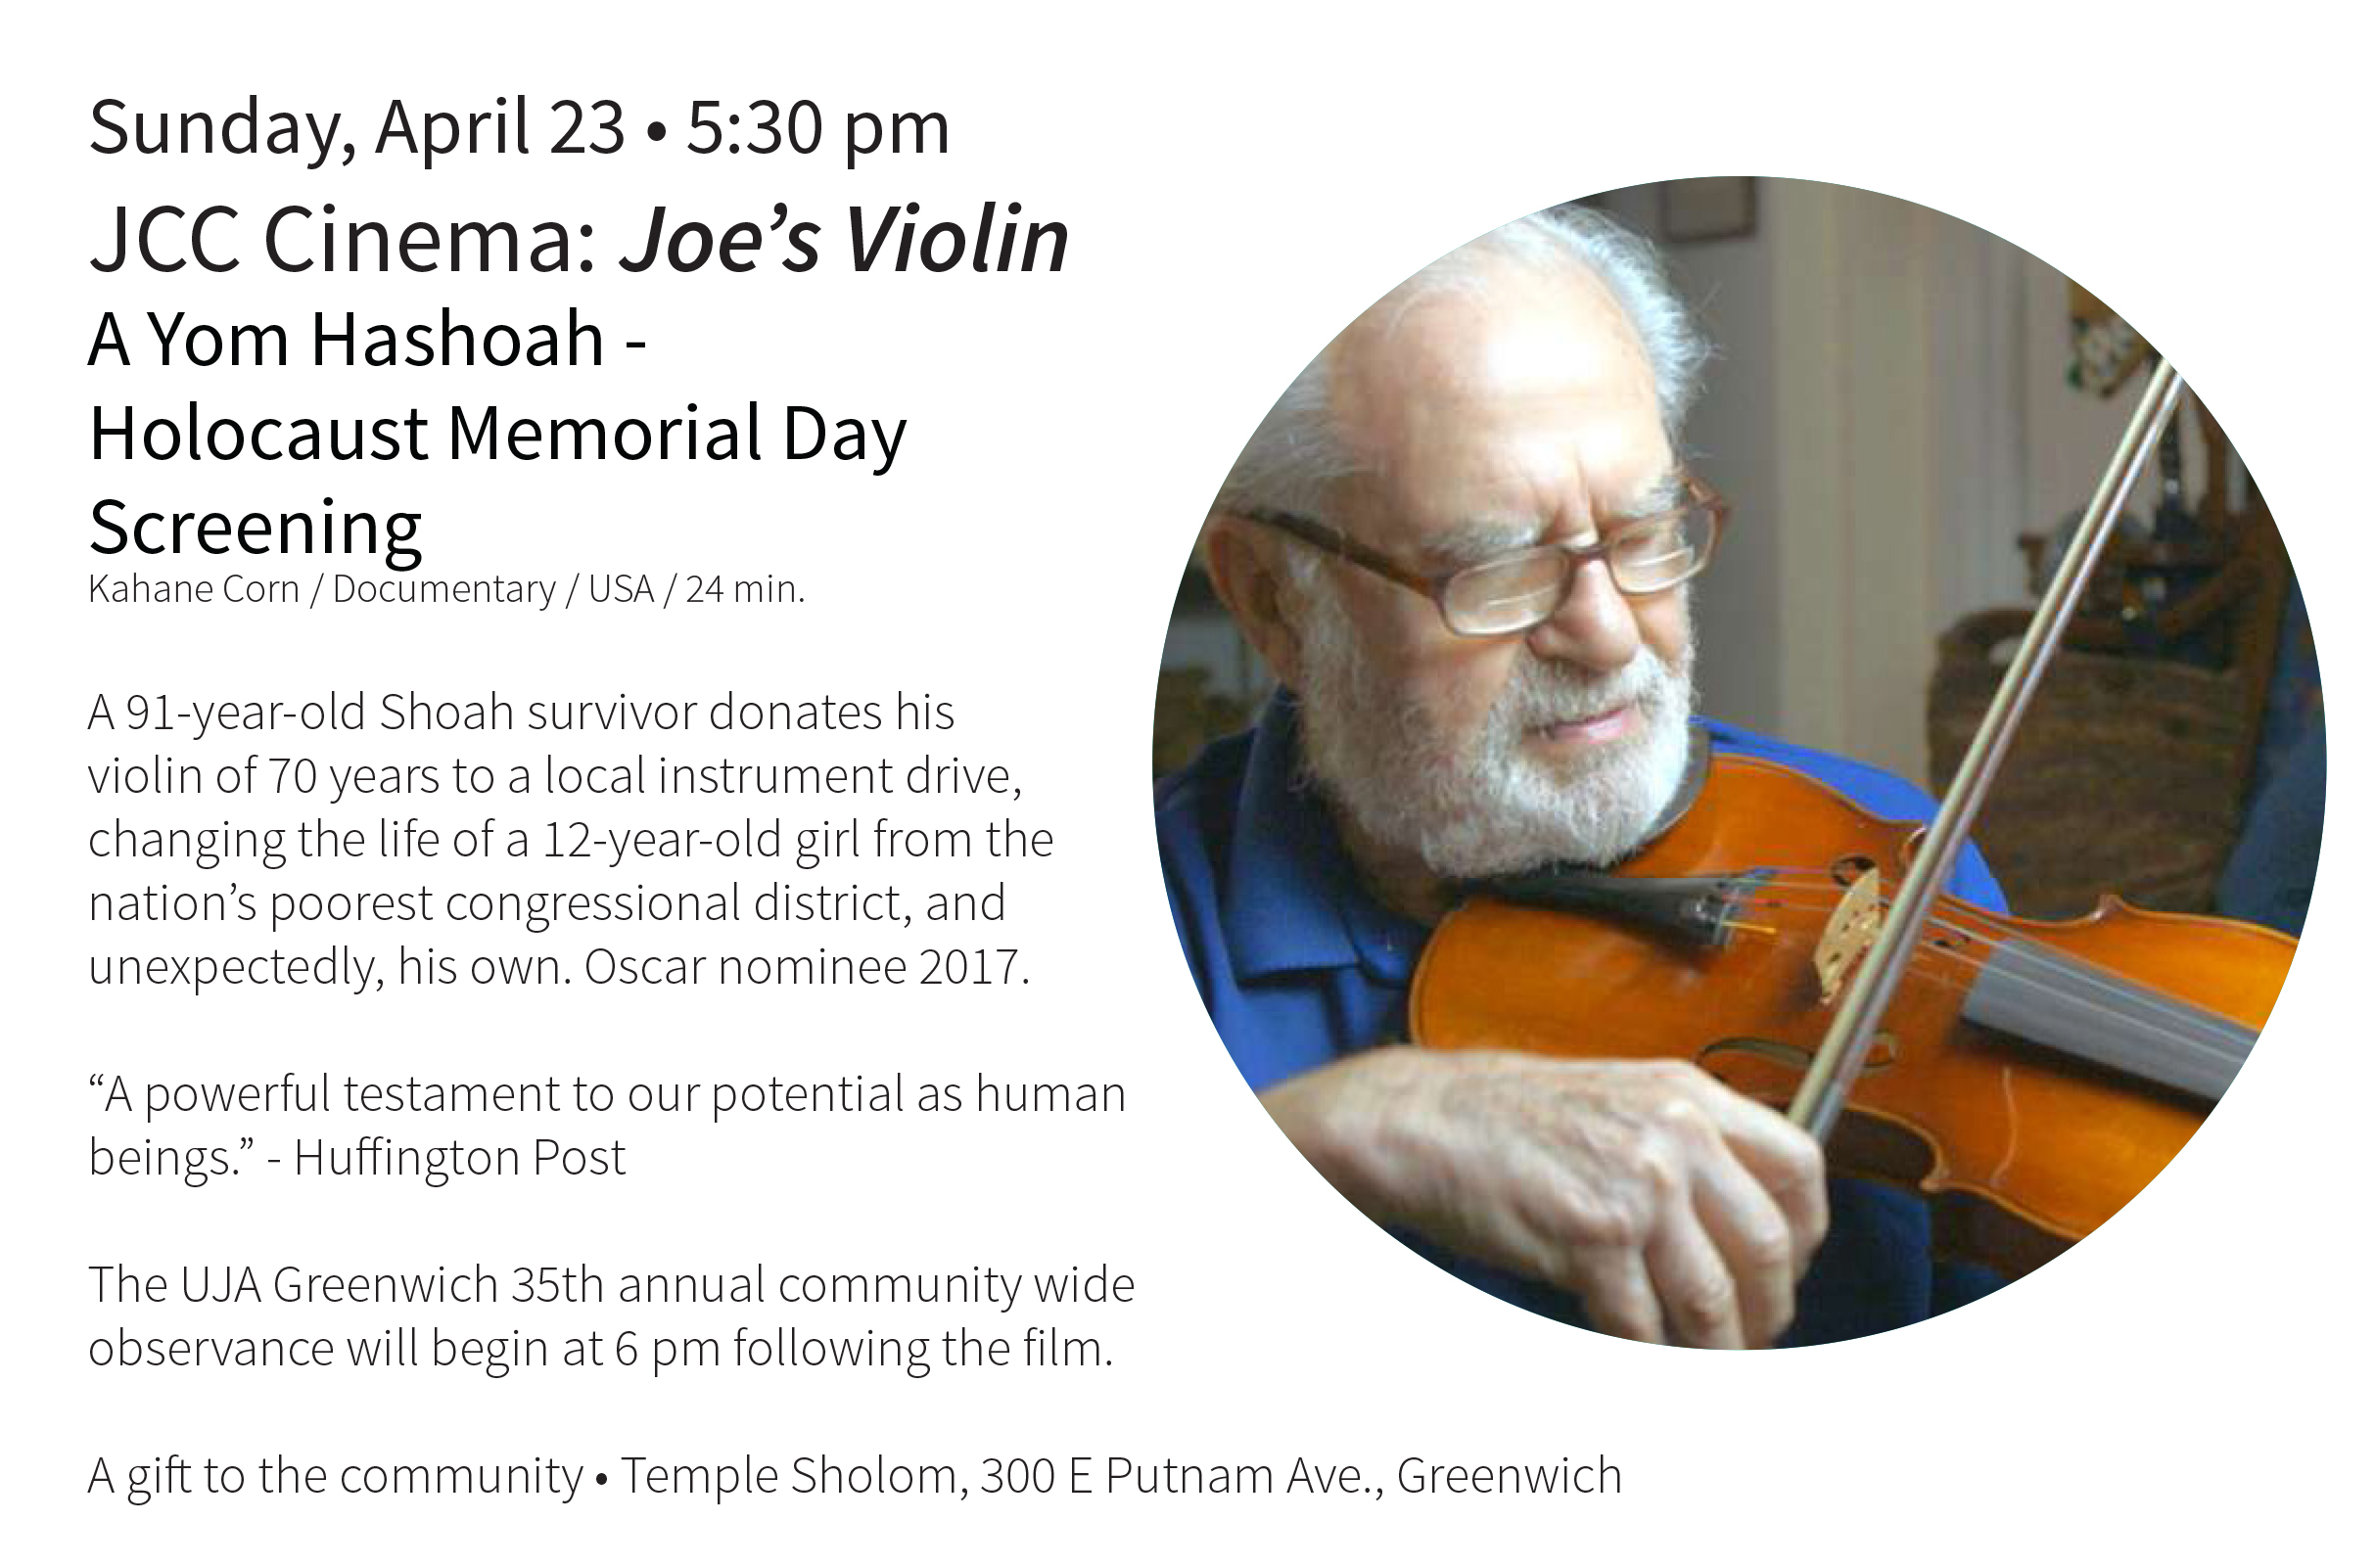 Joe's Violin Holocaust Memorial Day Screening